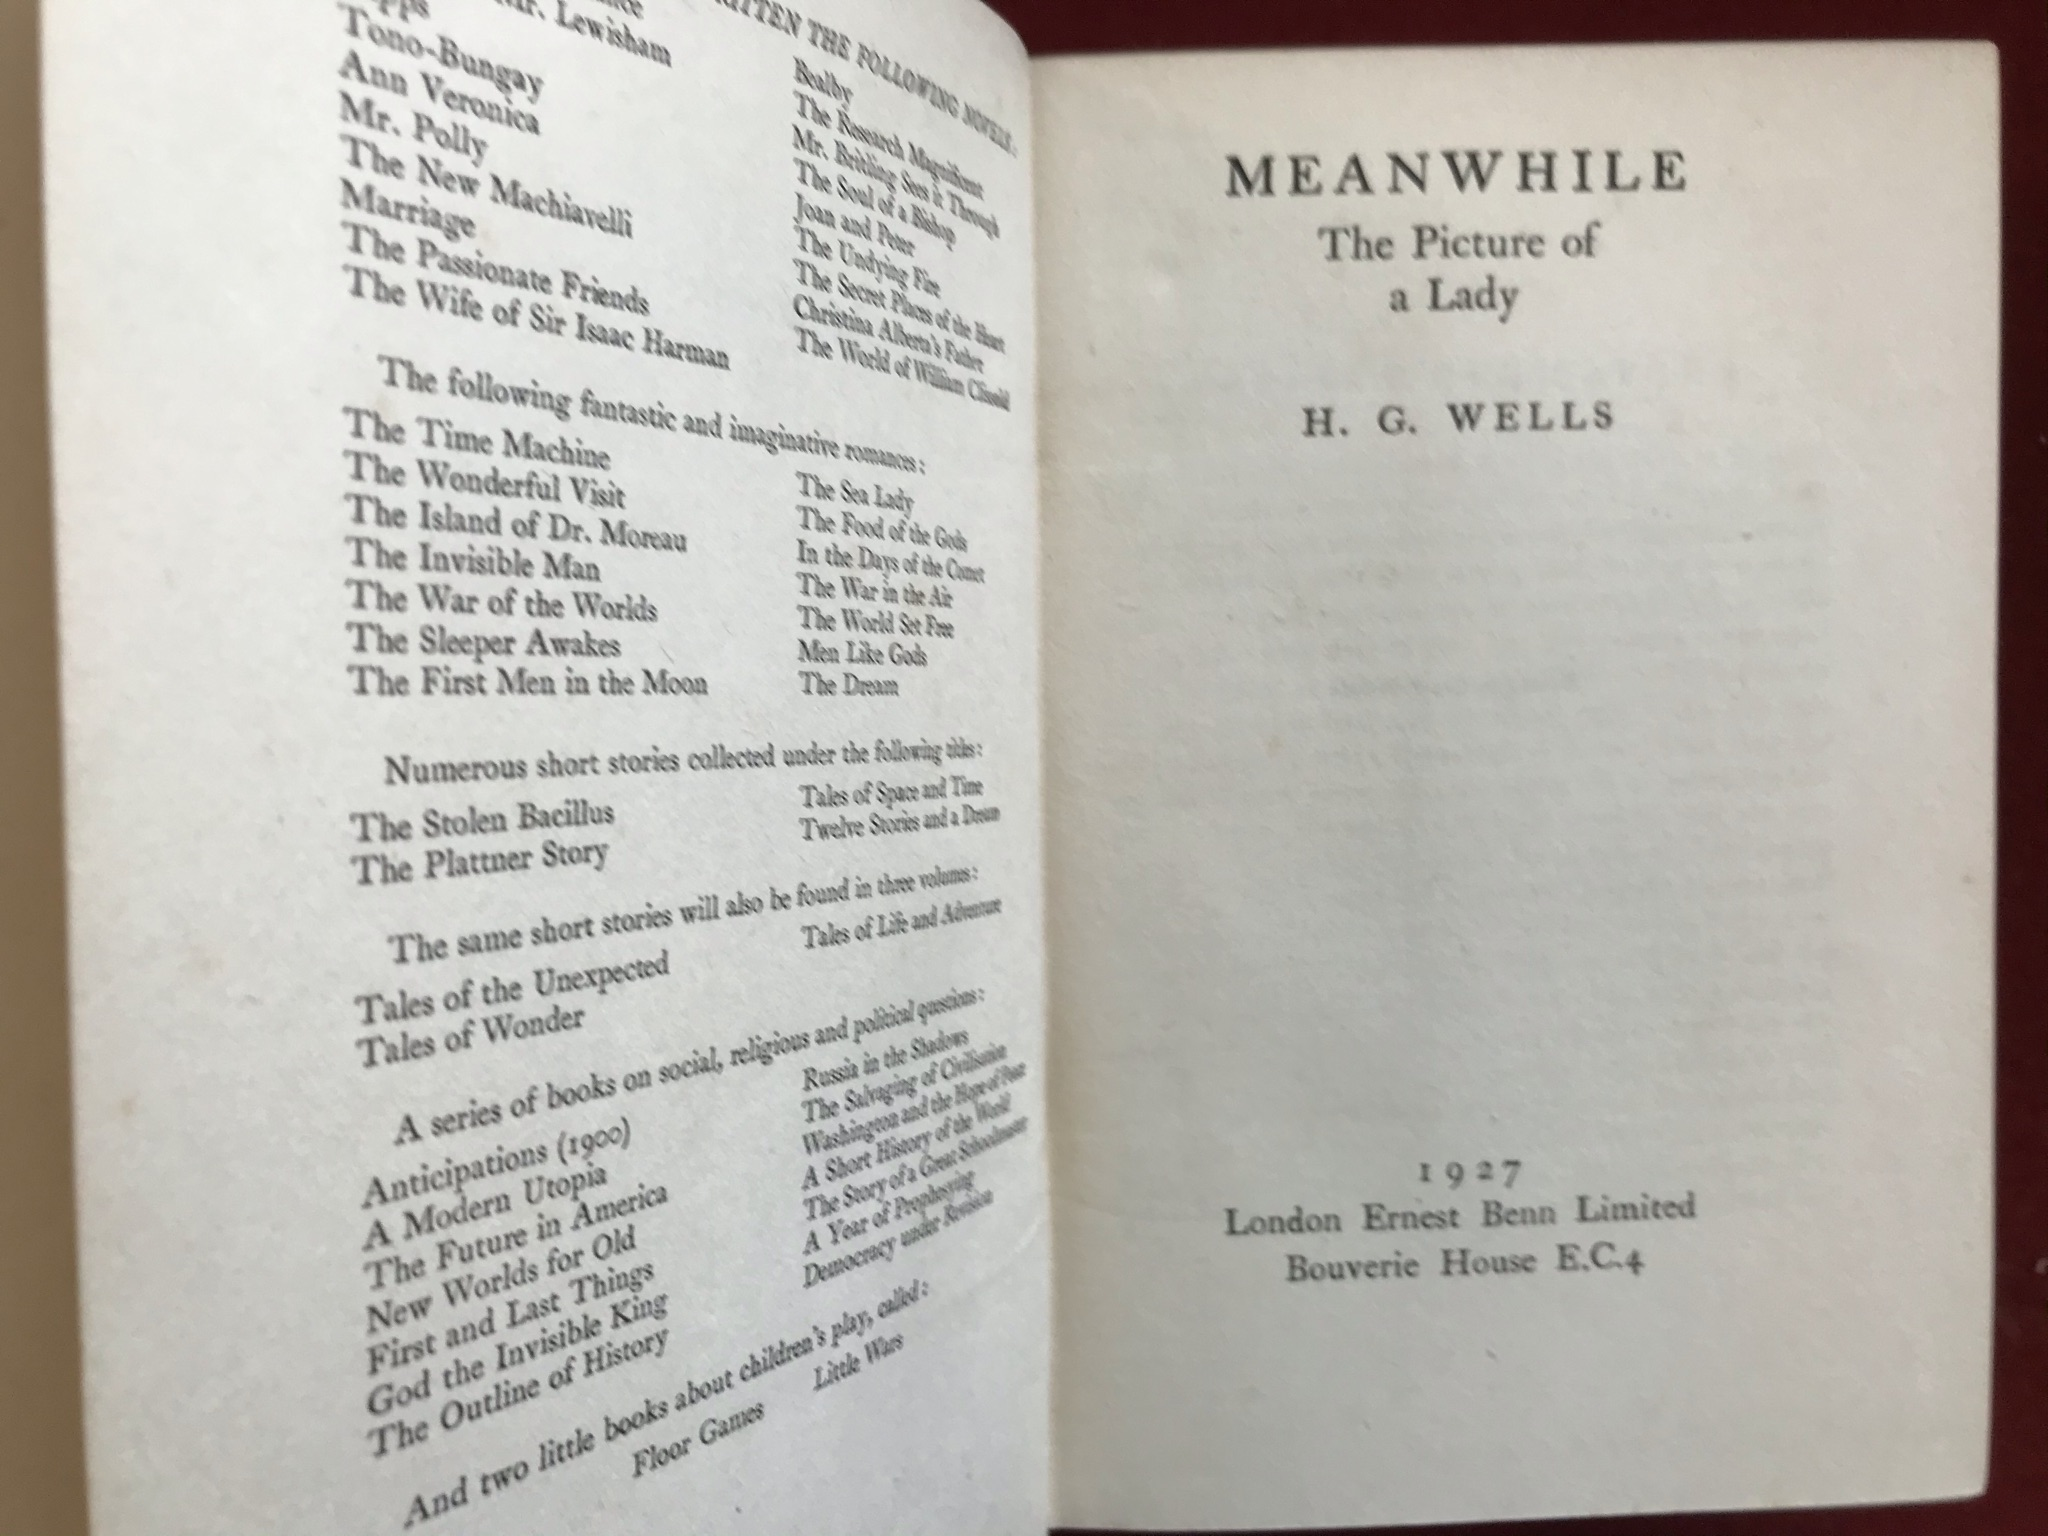 Meanwhile: The Picture of a LadyFirst edition, 1927 - Image 2 of 3